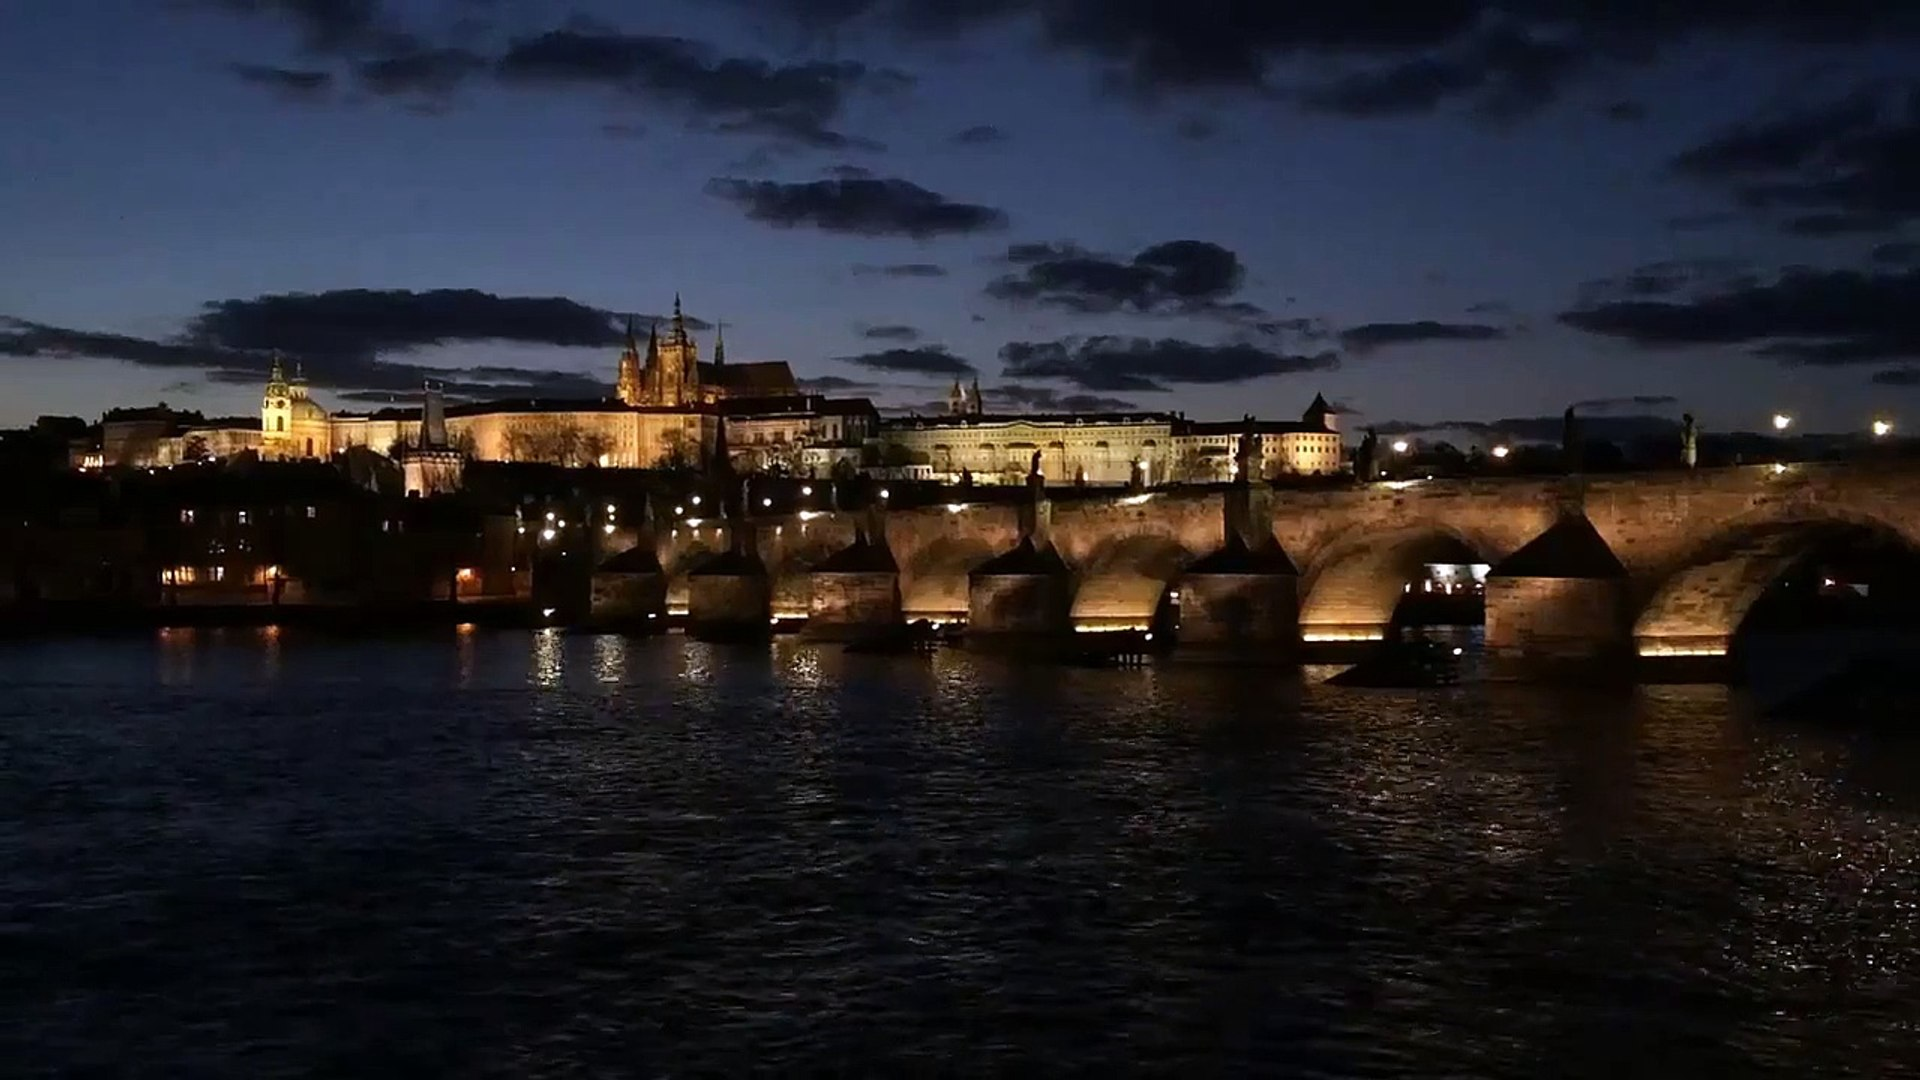 The Charles Bridge at day, Prague, Czech Republic 2 - Top Documentary Films